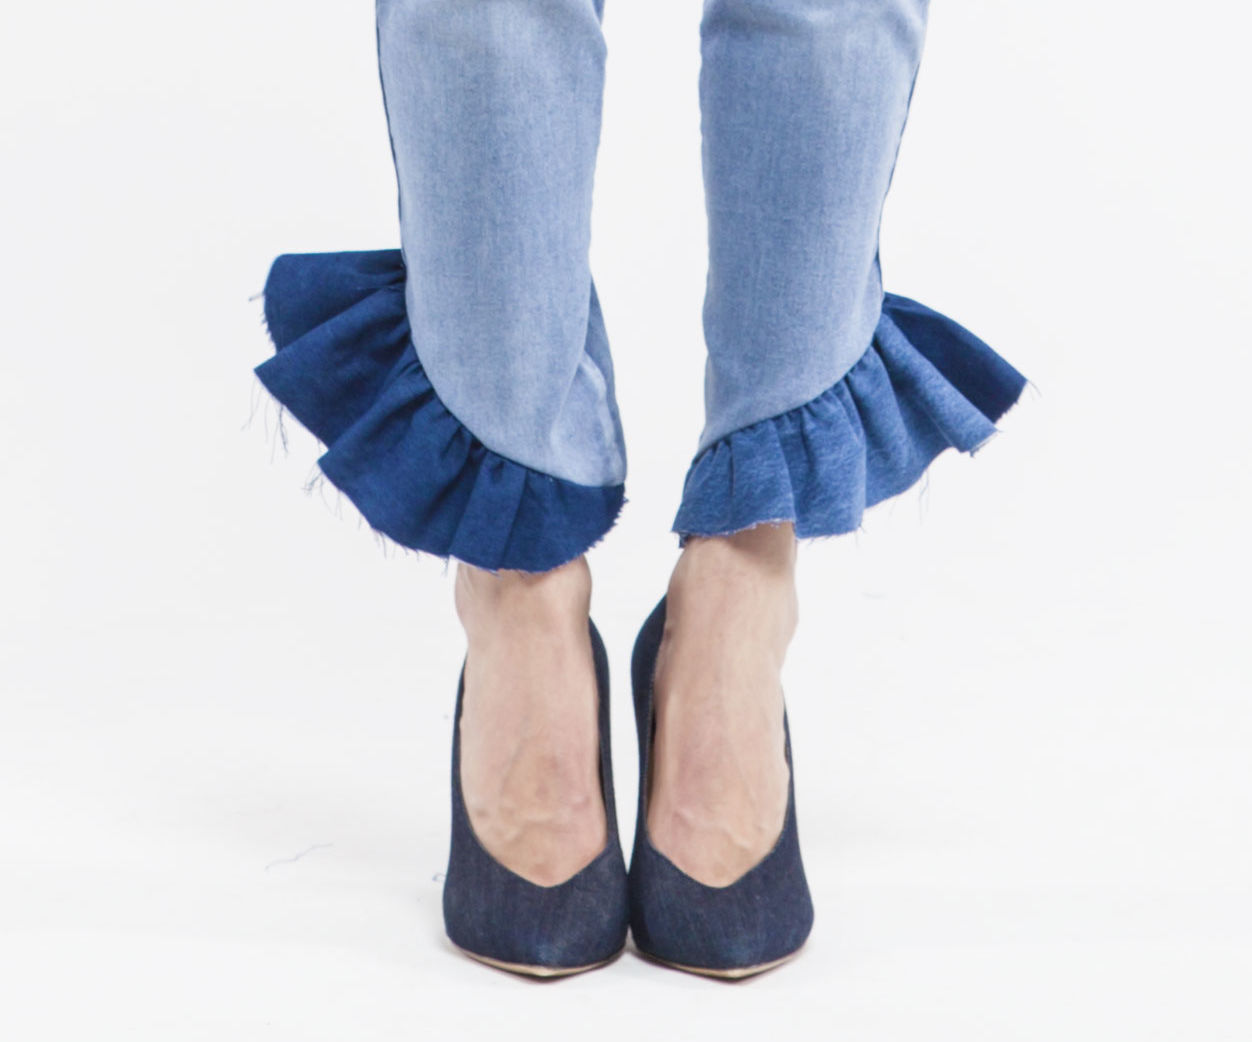 DIY1704 - RUFFLE-UP YOUR JEANS